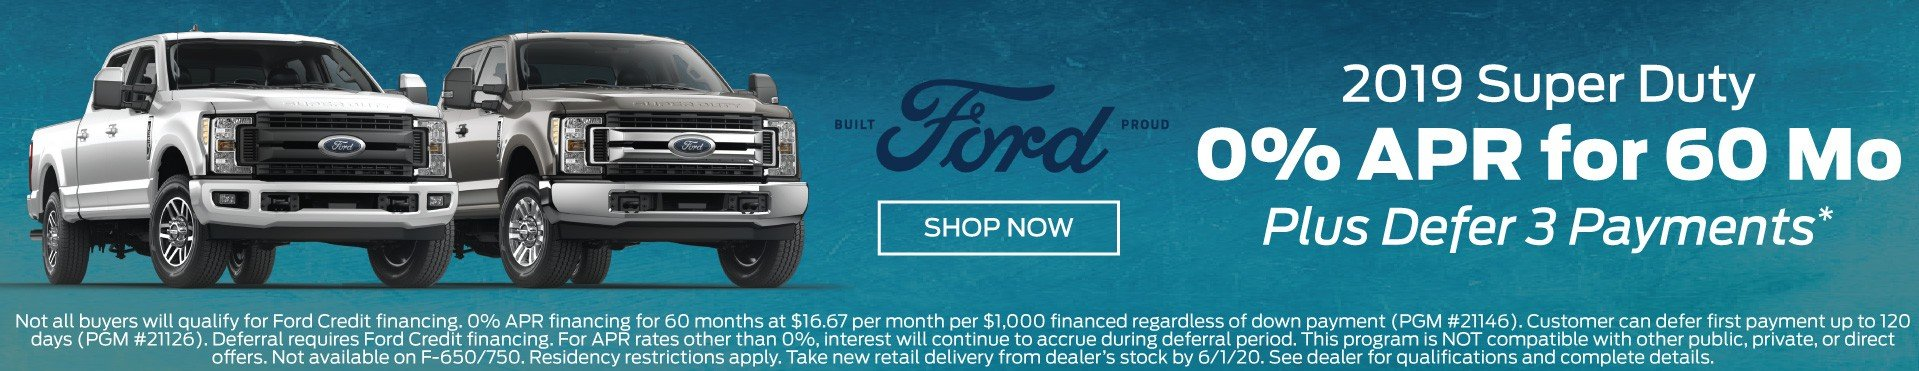 2019 Super Duty Incentive 6-1-20